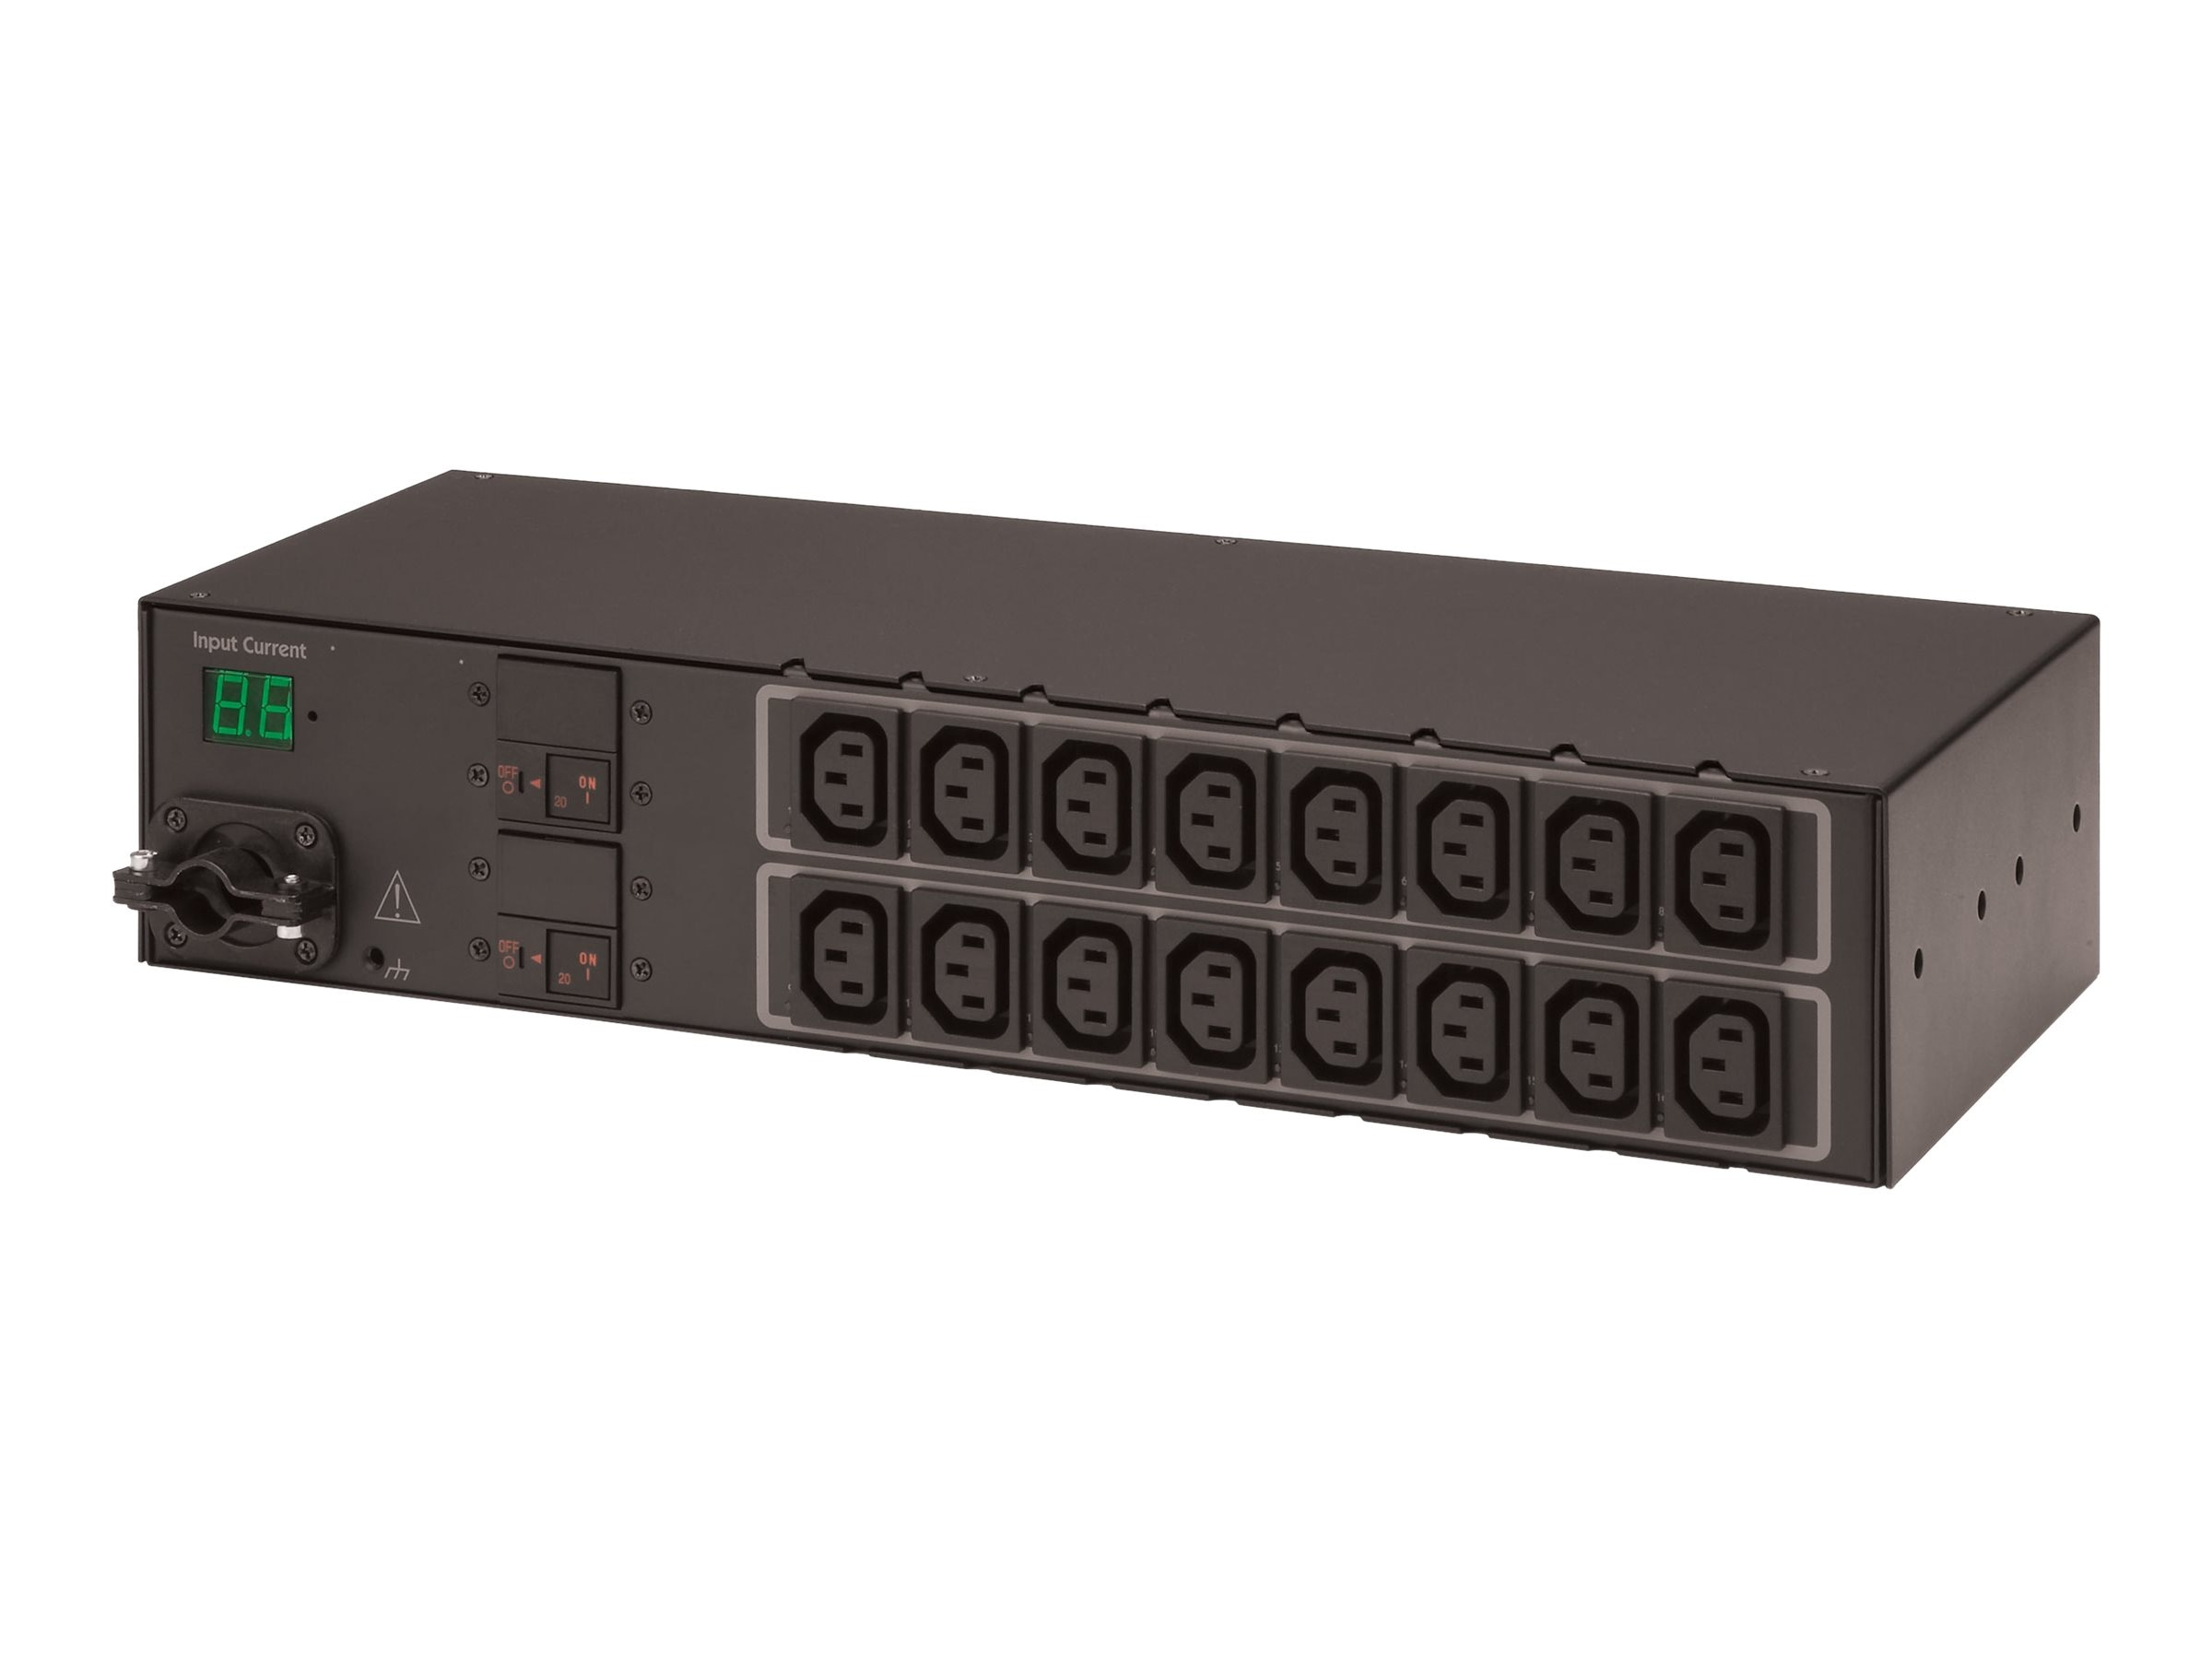 Server Technology CW-16HEK454 Image 1